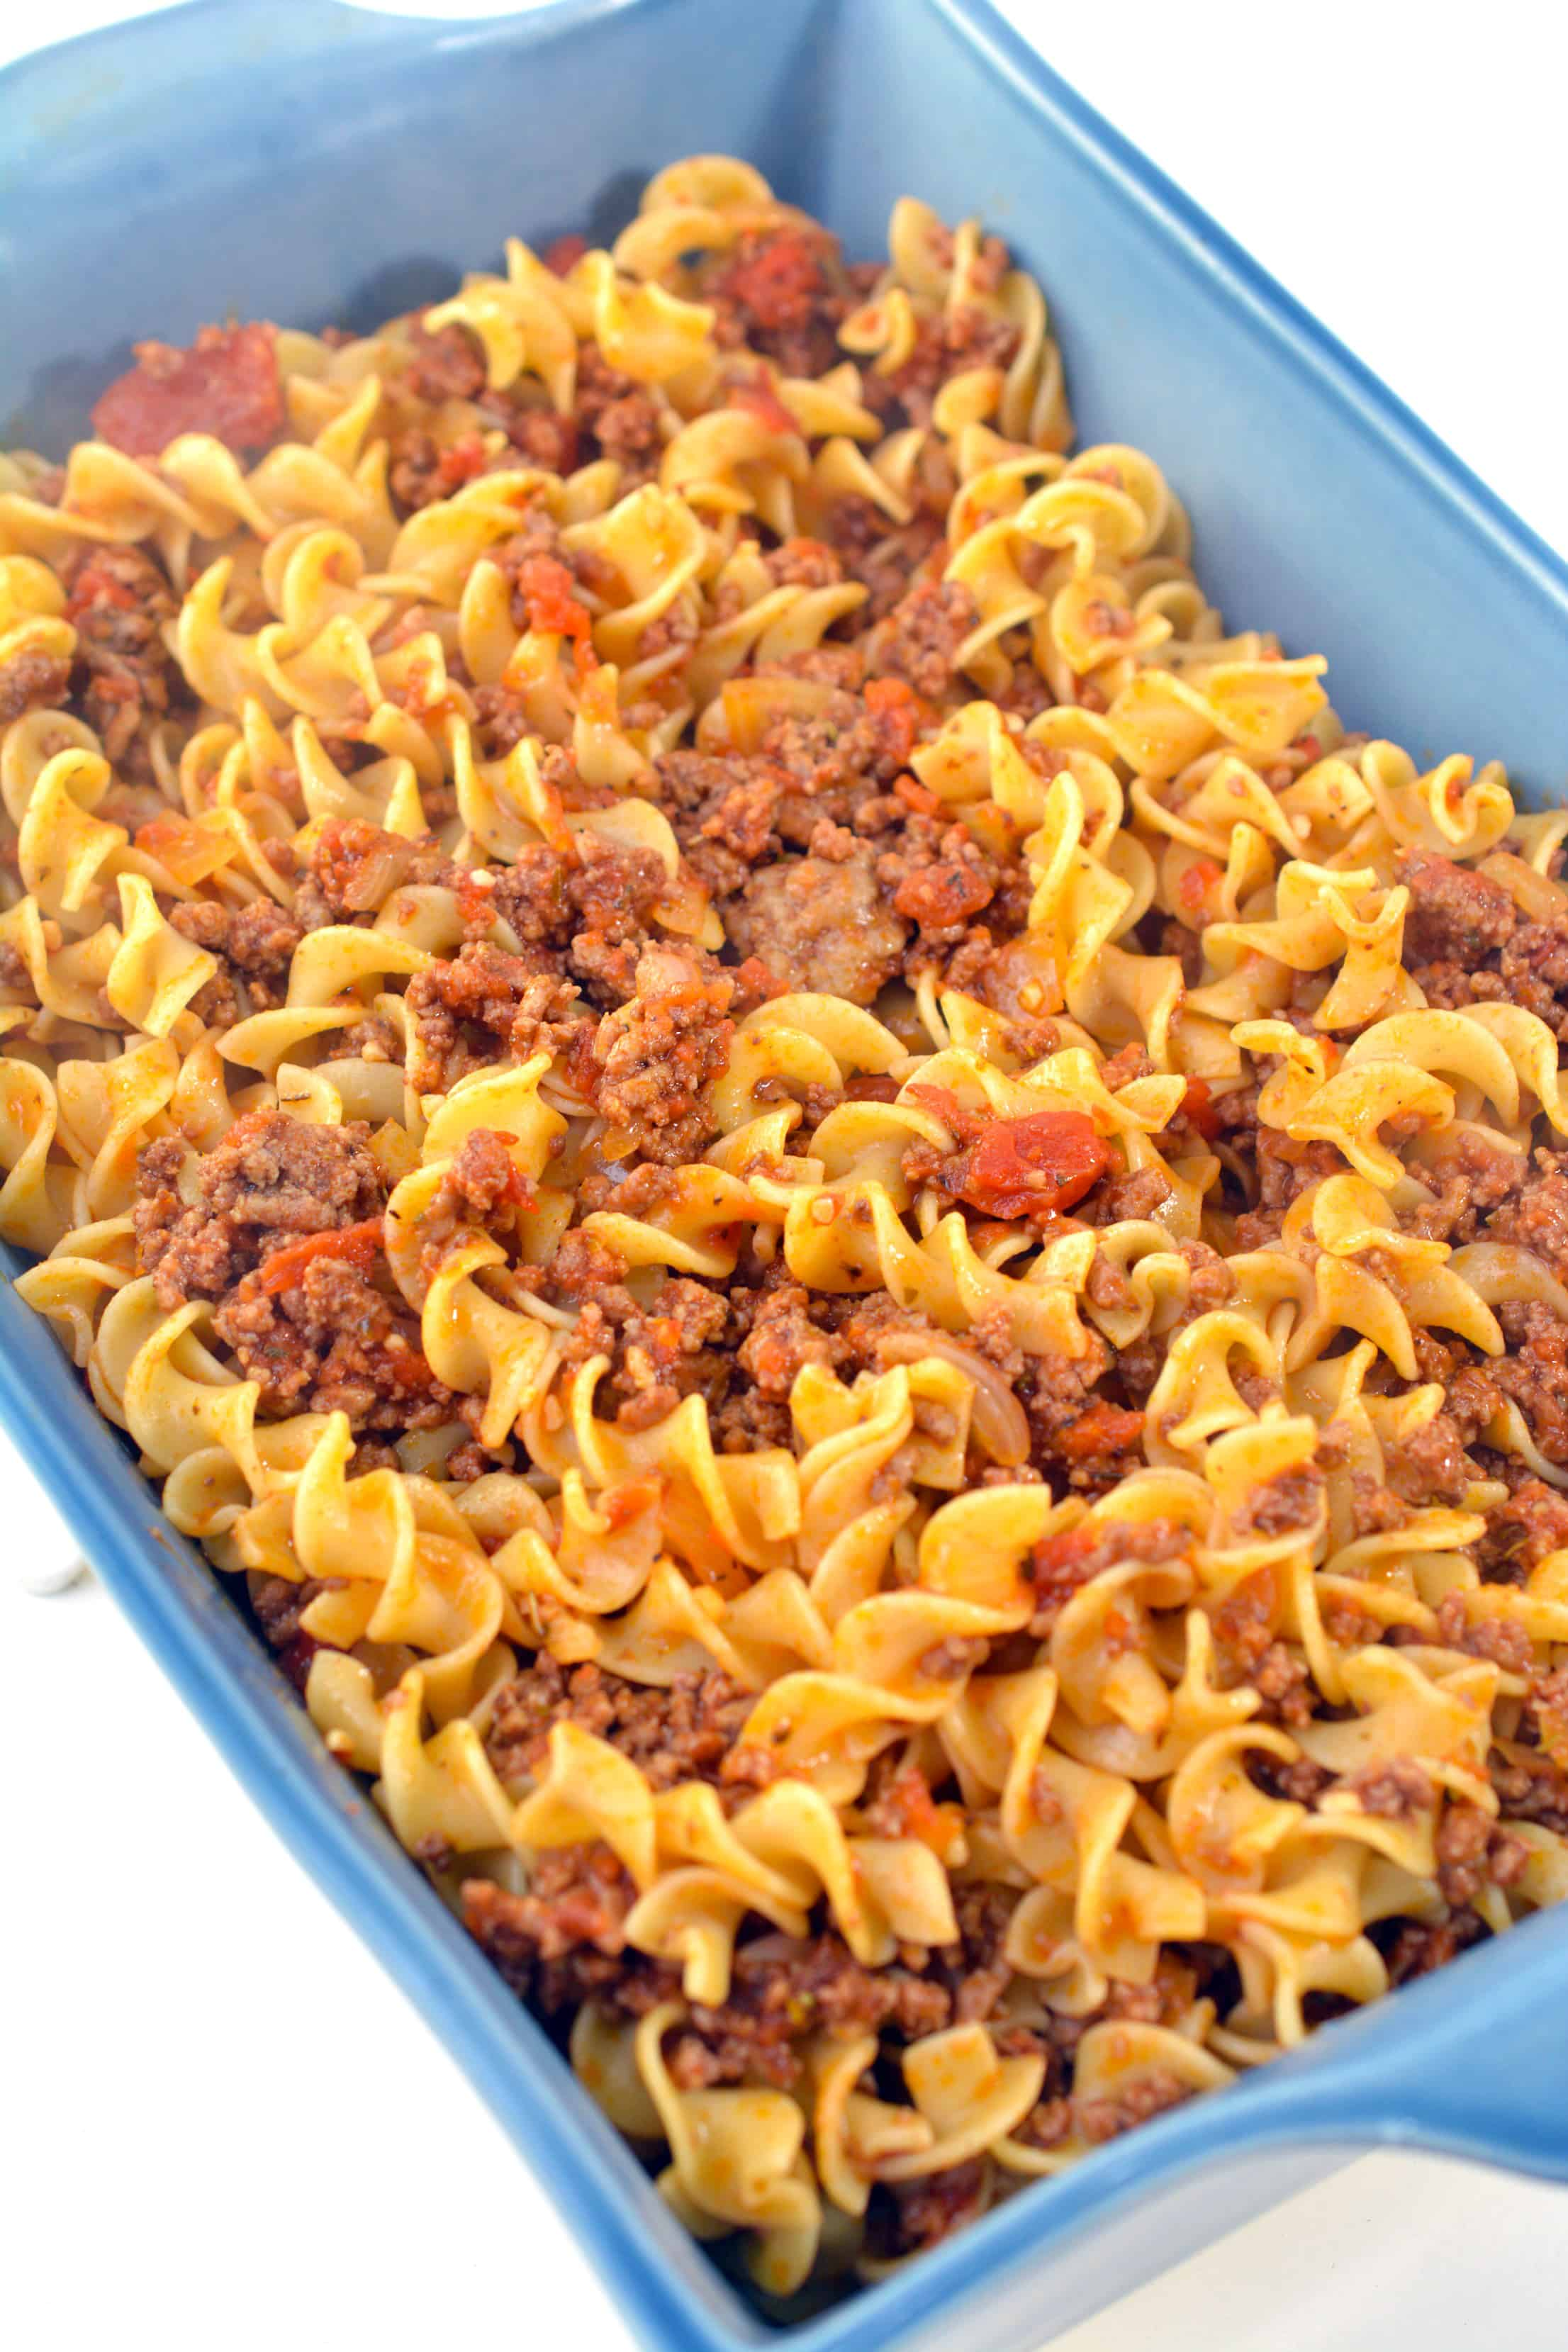 noodles and beef in casserole dish